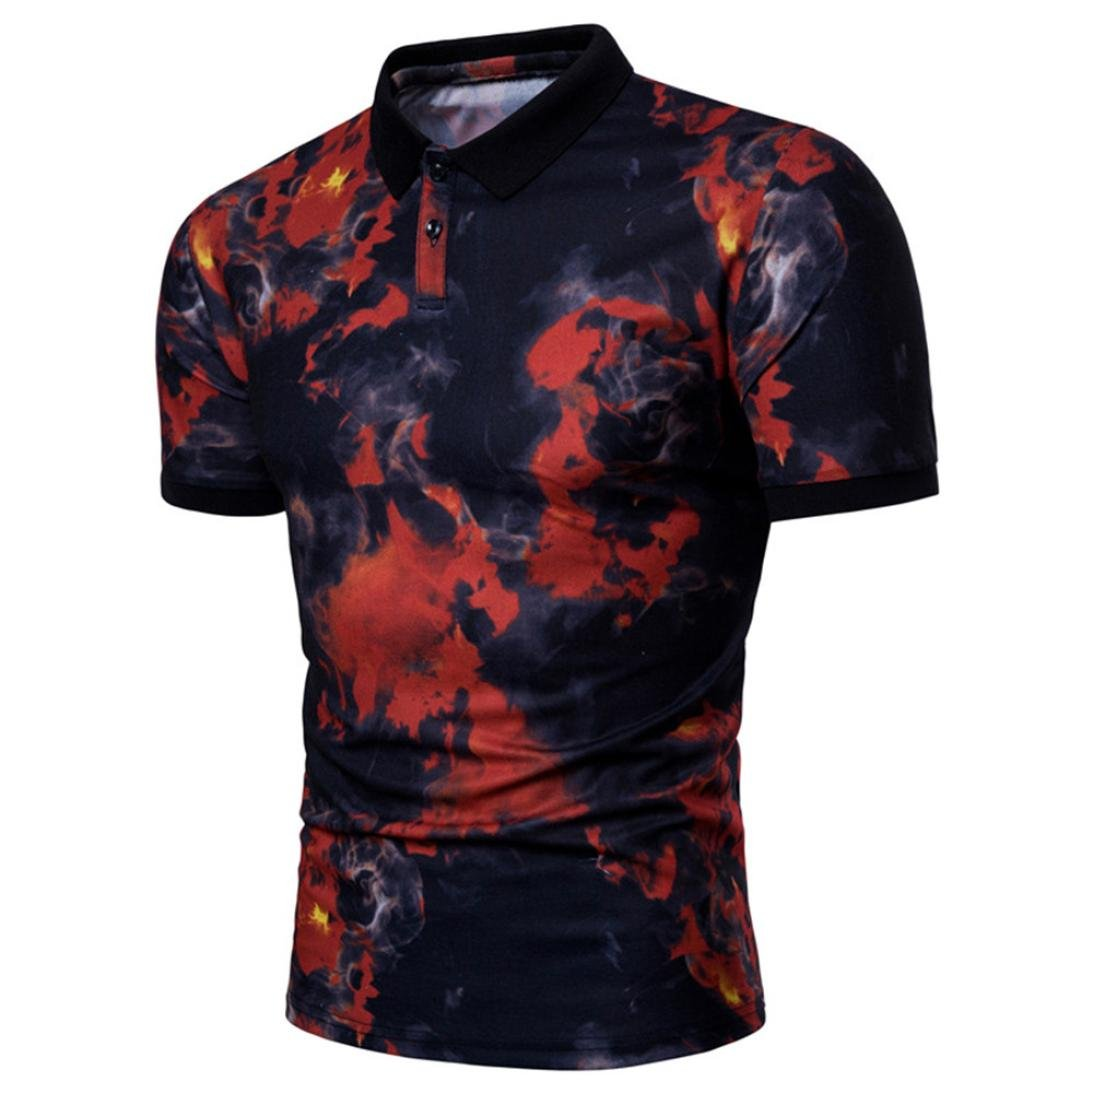 vermers Clearance Sale Fashion Men's Polo Shirts Summer Casual Lapel Print Pullover T-Shirt Tops(XL, Red)